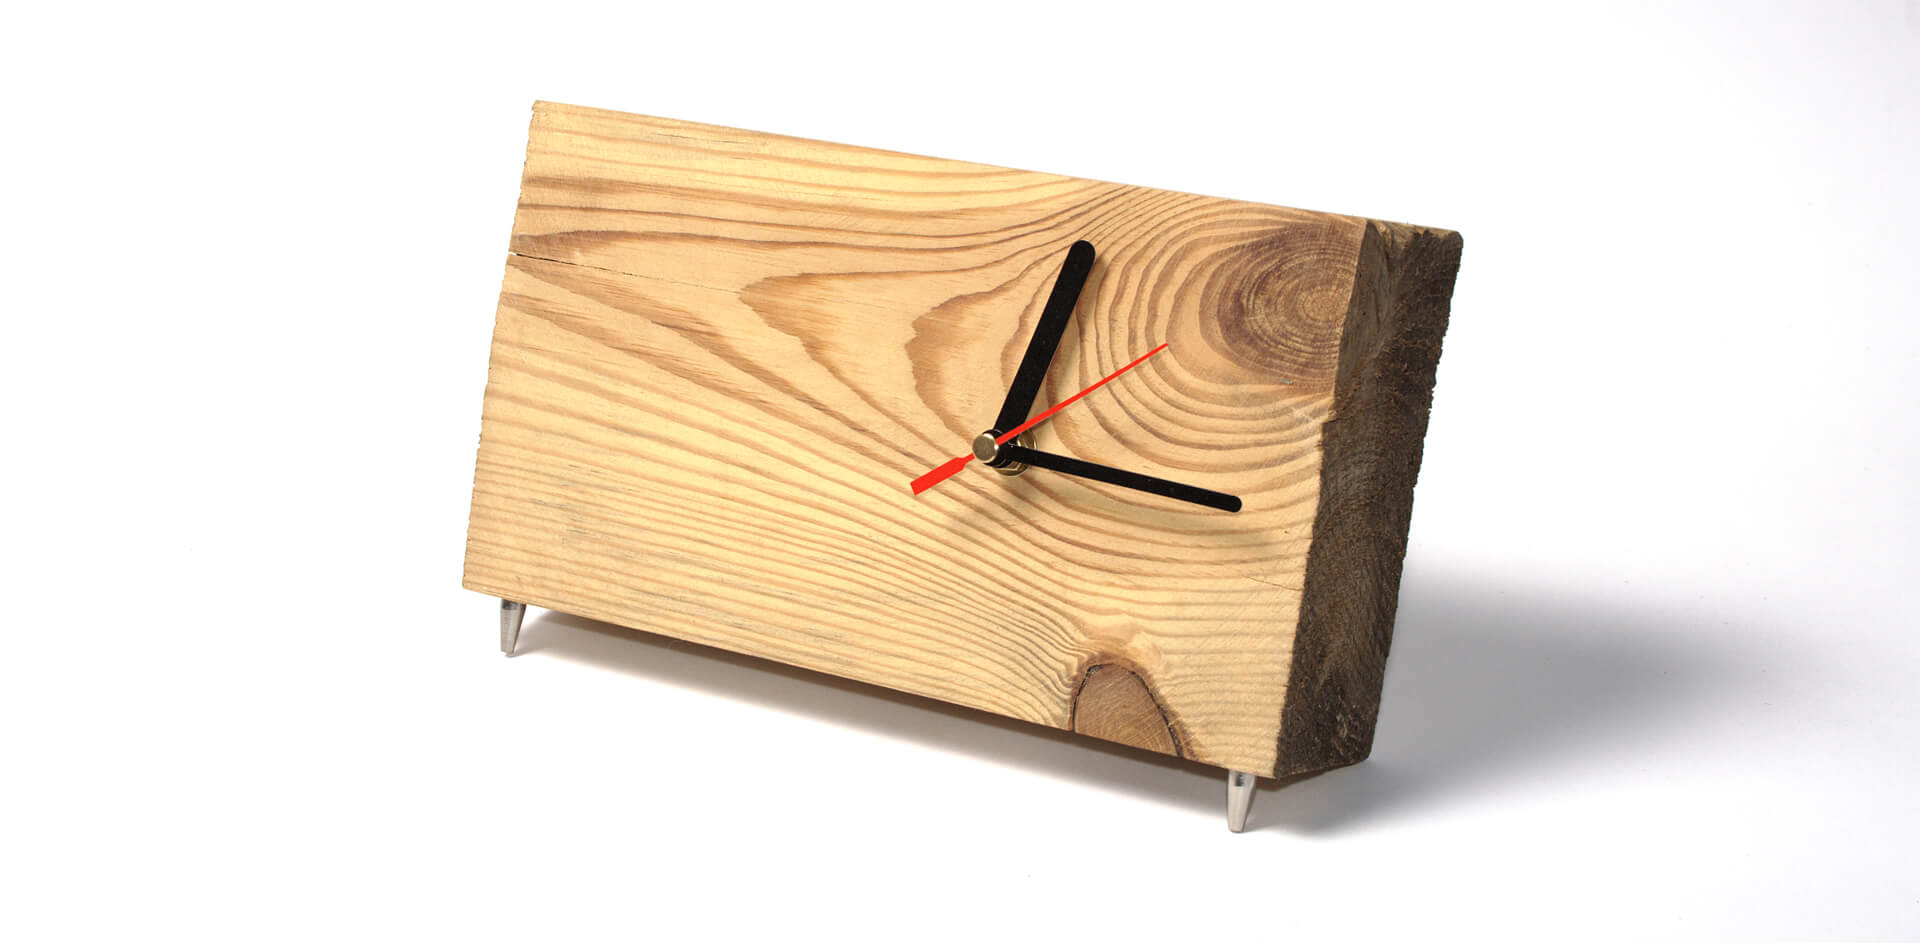 woodpecker_clock_new_01